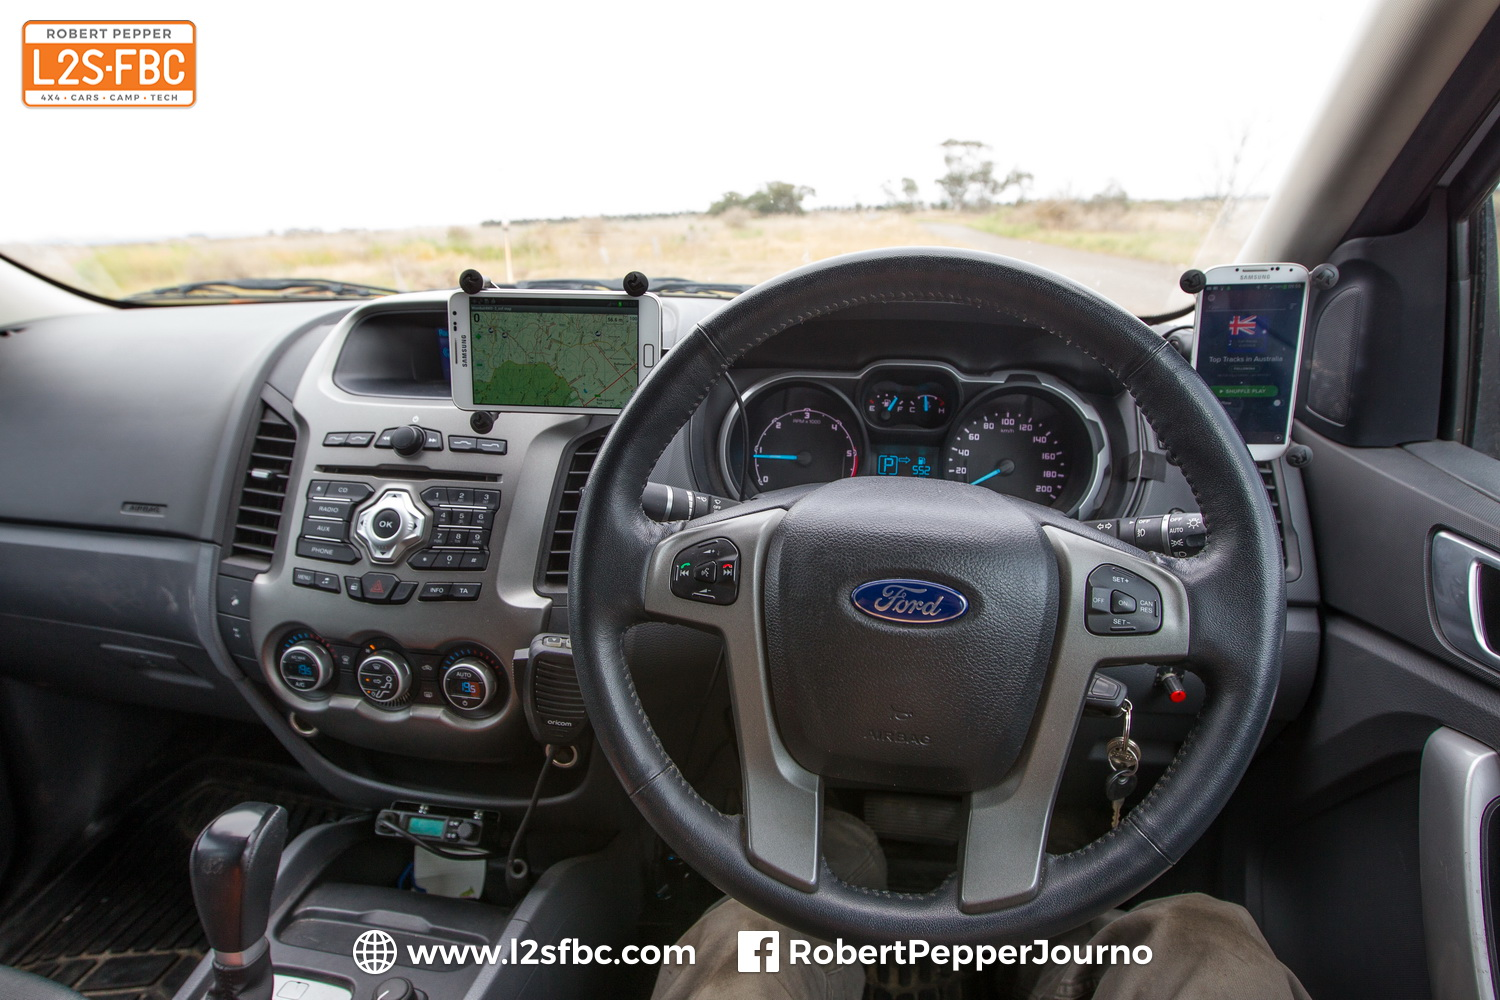 Mounting a GPS Receiver and Accessories in the vehicle